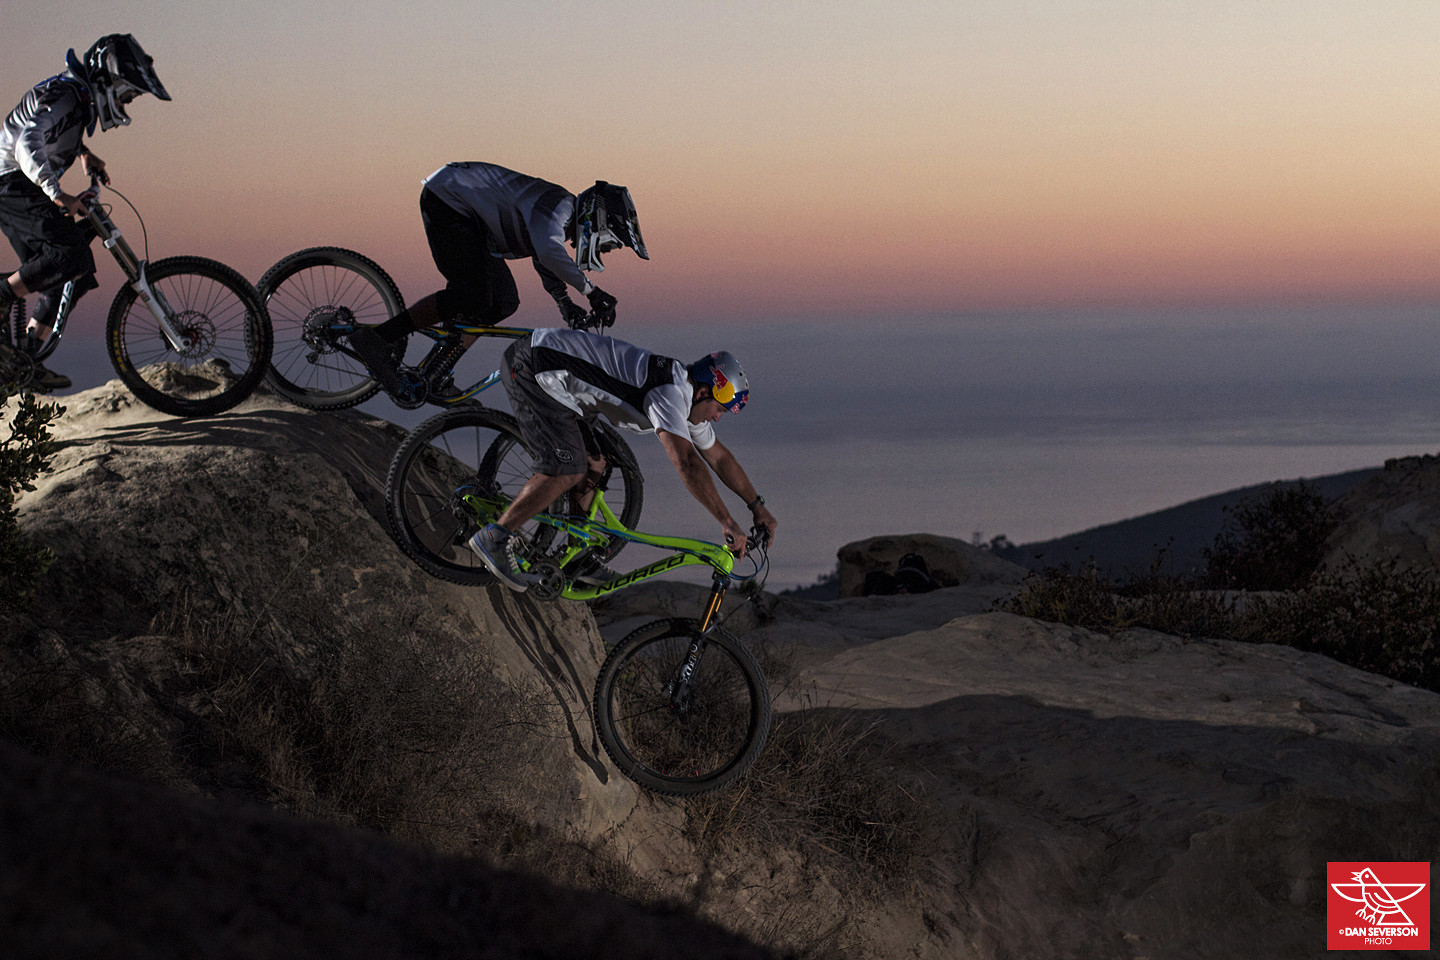 Three's Company - danseverson photo - Mountain Biking Pictures - Vital MTB